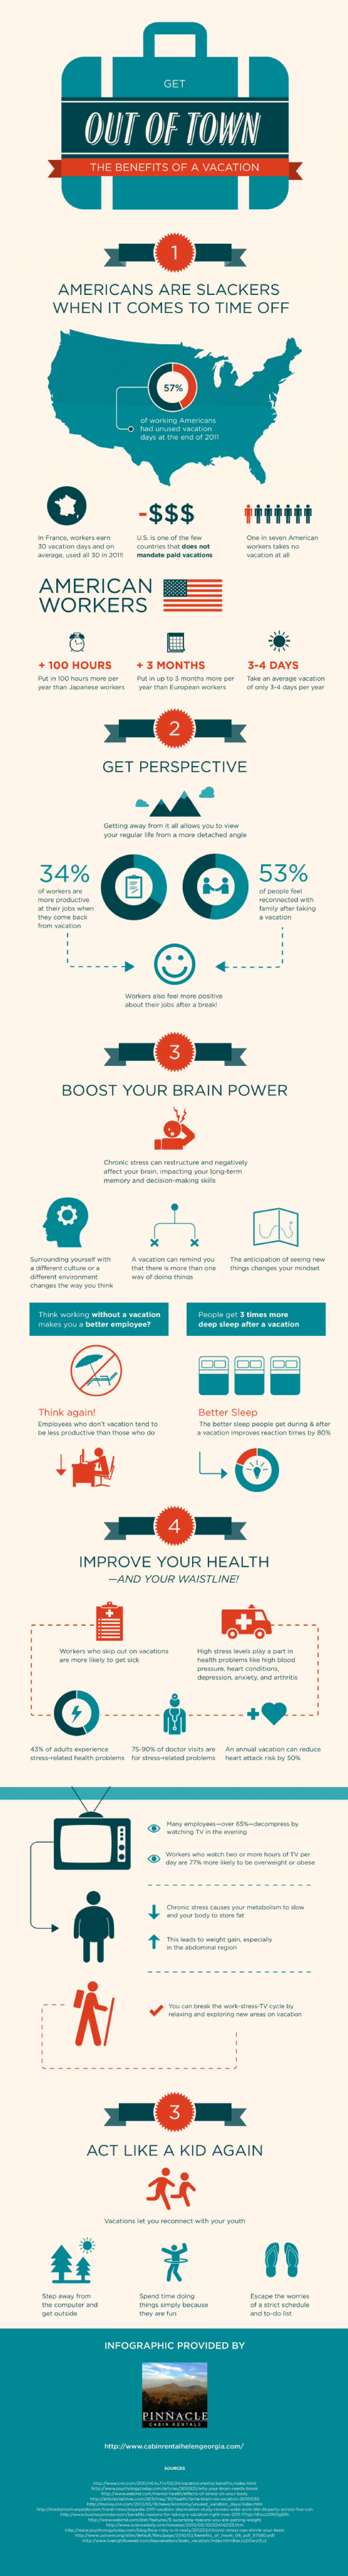 Get Out of Town: The Benefits of a Vacation Infographic